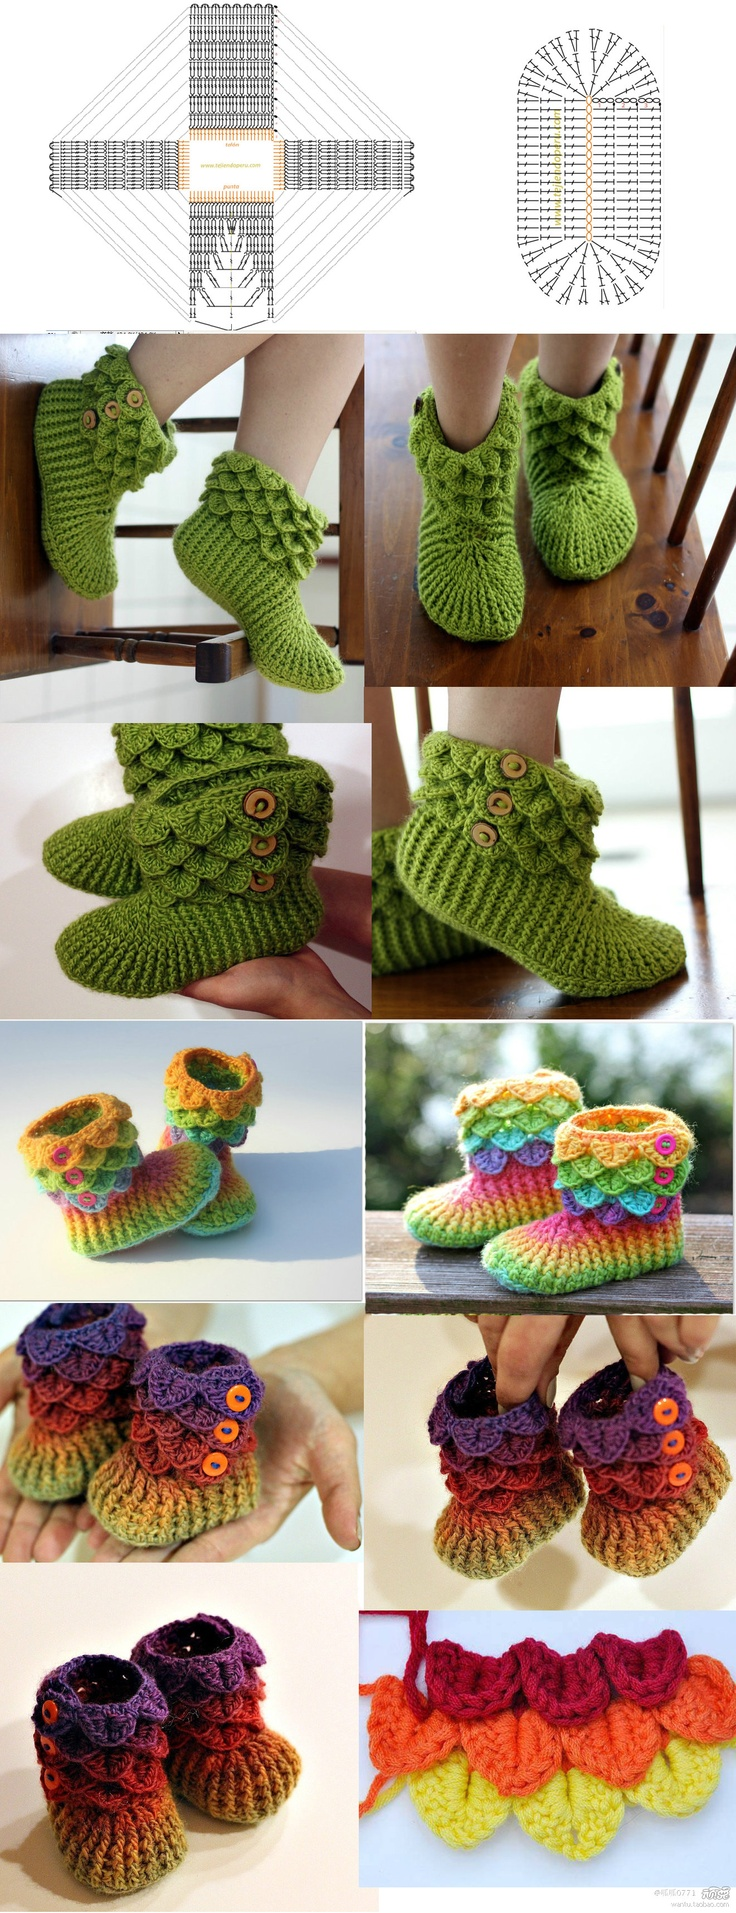 Crochet Booties Slippers Kid/Adult